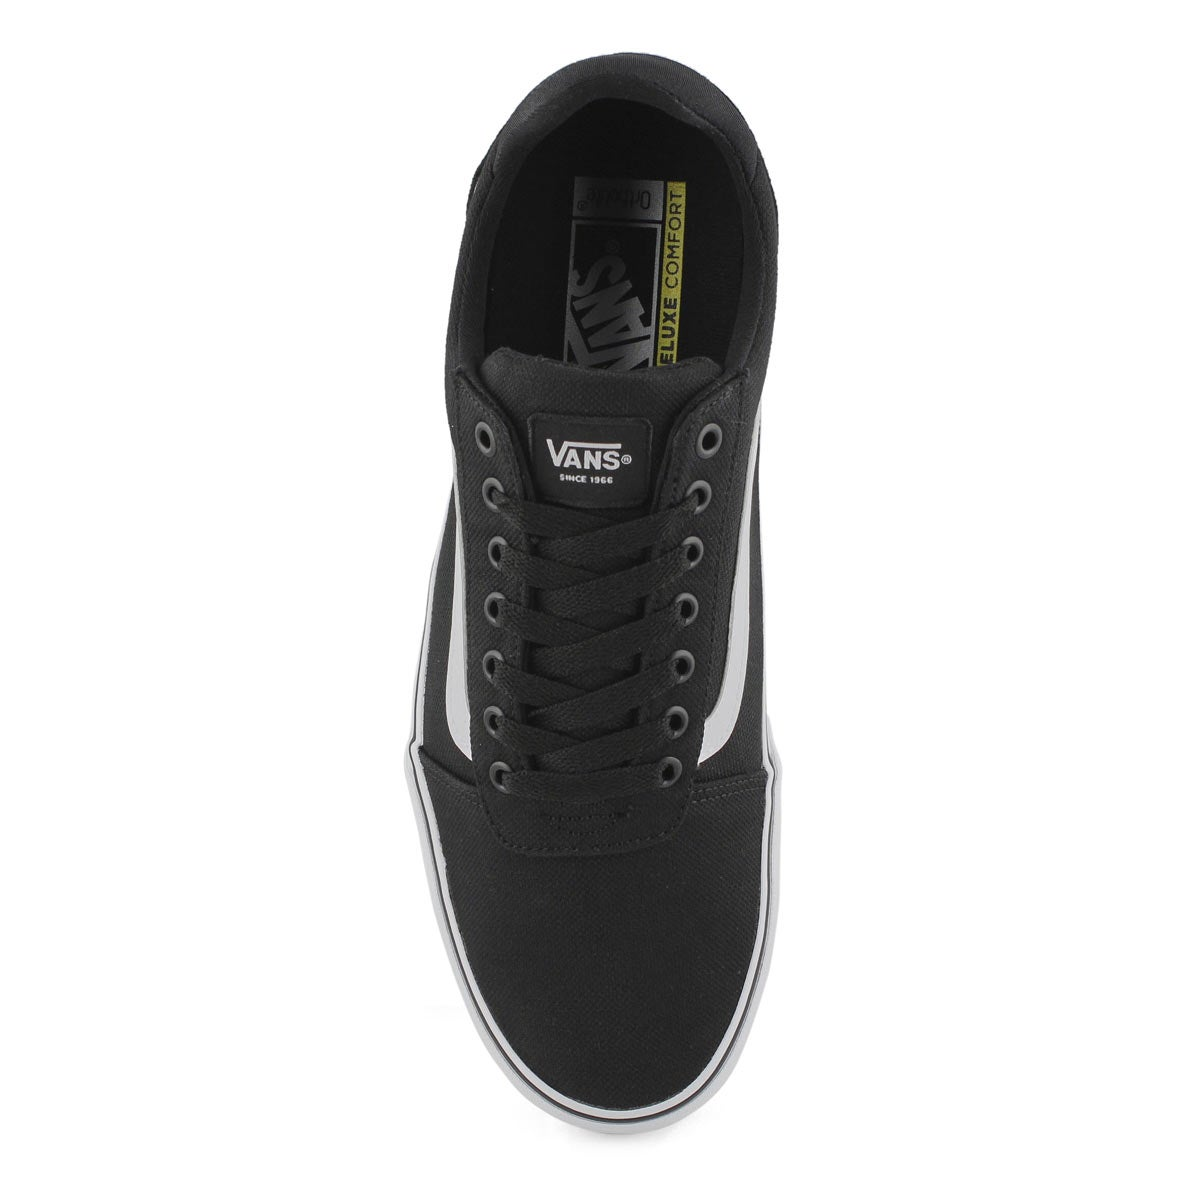 Mns Ward-Deluxe blk/wht lace up snkr